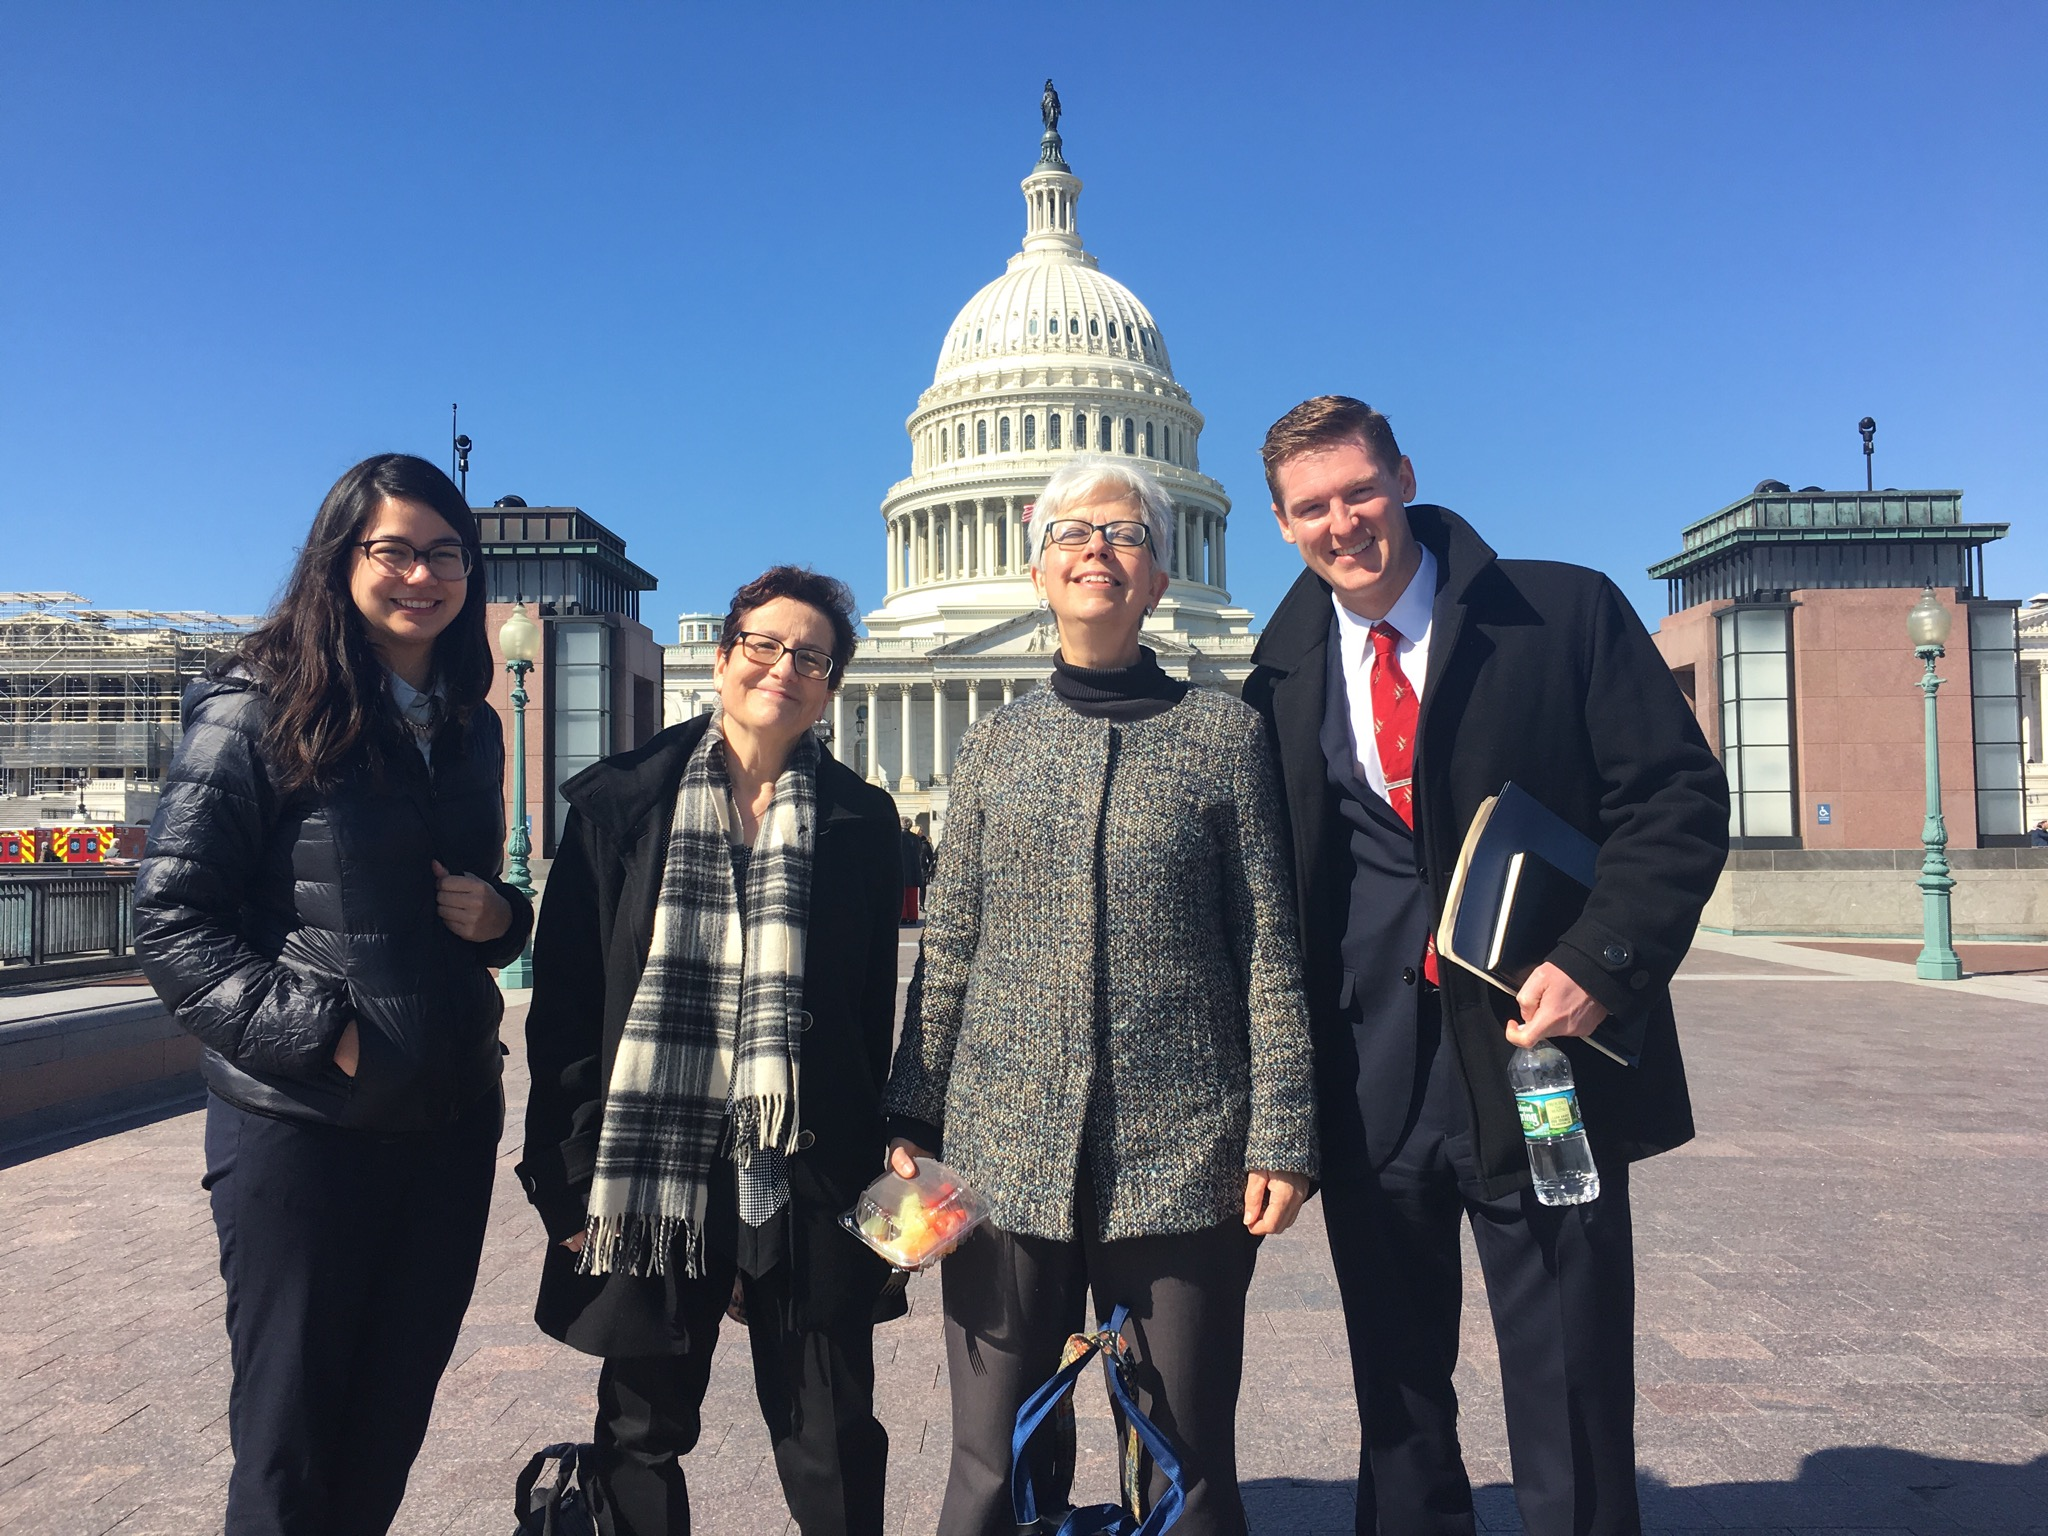 Coalition members National Audubon, Pennsylvania Environmental Council, National Wildlife Federation, and Ducks Unlimited visit the Capitol on March 12, 2019.